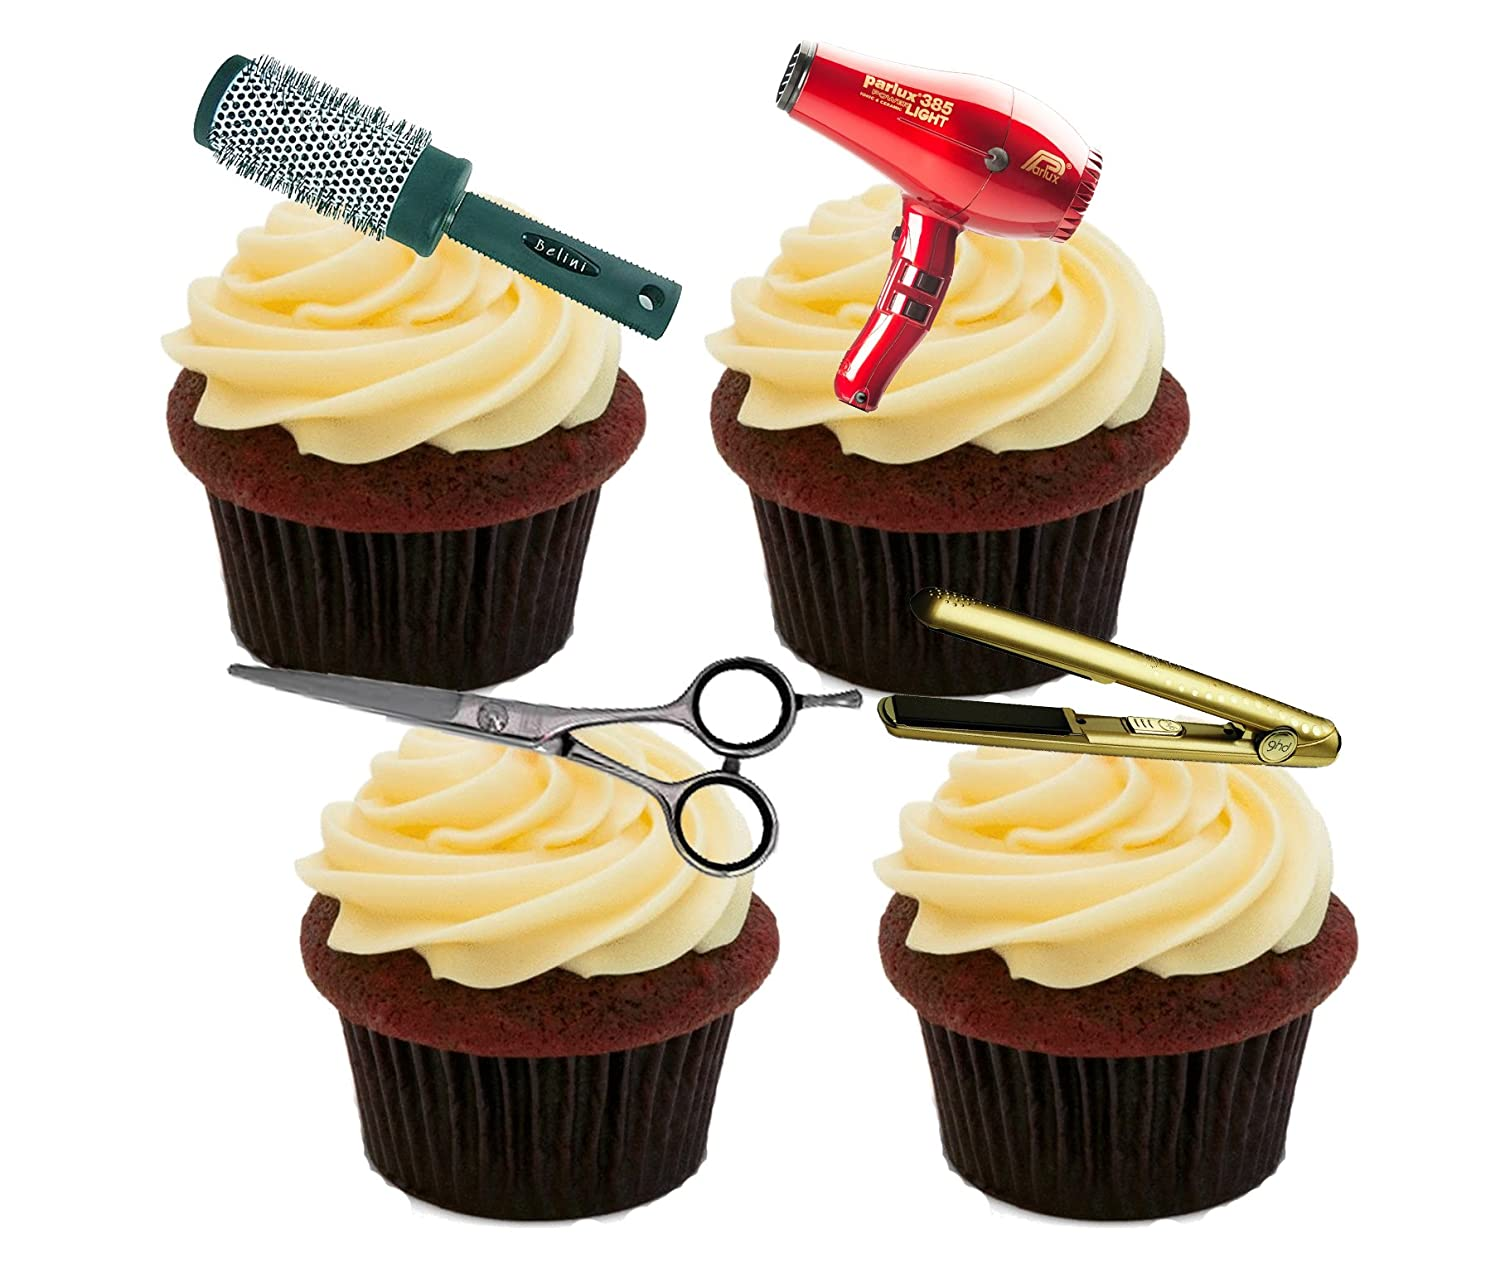 Hairdresser Edible Cupcake Toppers - Stand-up Wafer Cake Decorations ...